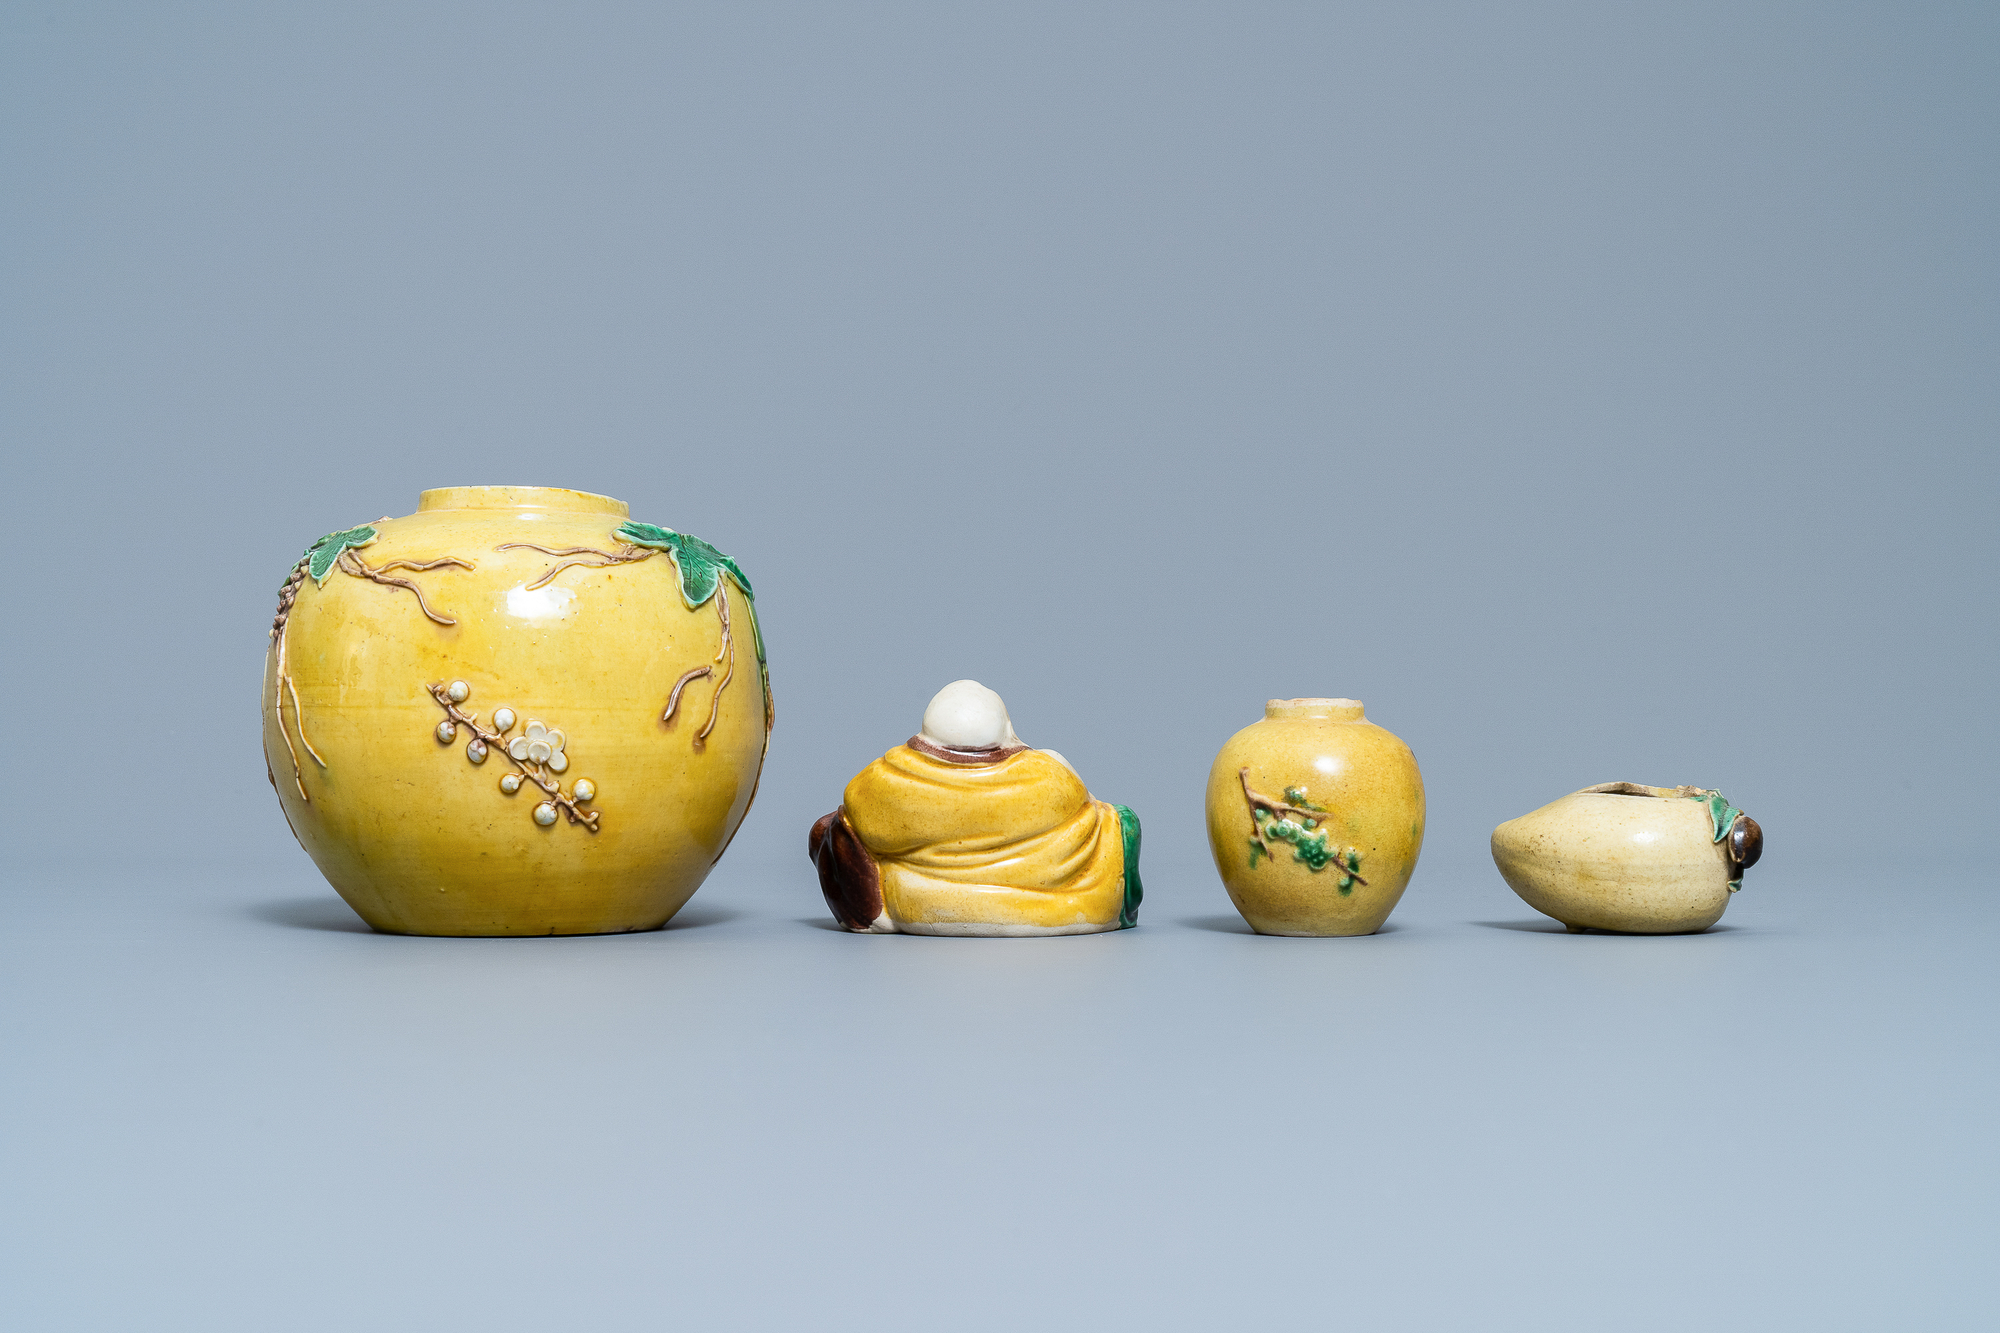 Two Chinese biscuit jars, a Buddha figure and a brushwasher, 19/20th C. - Image 4 of 7